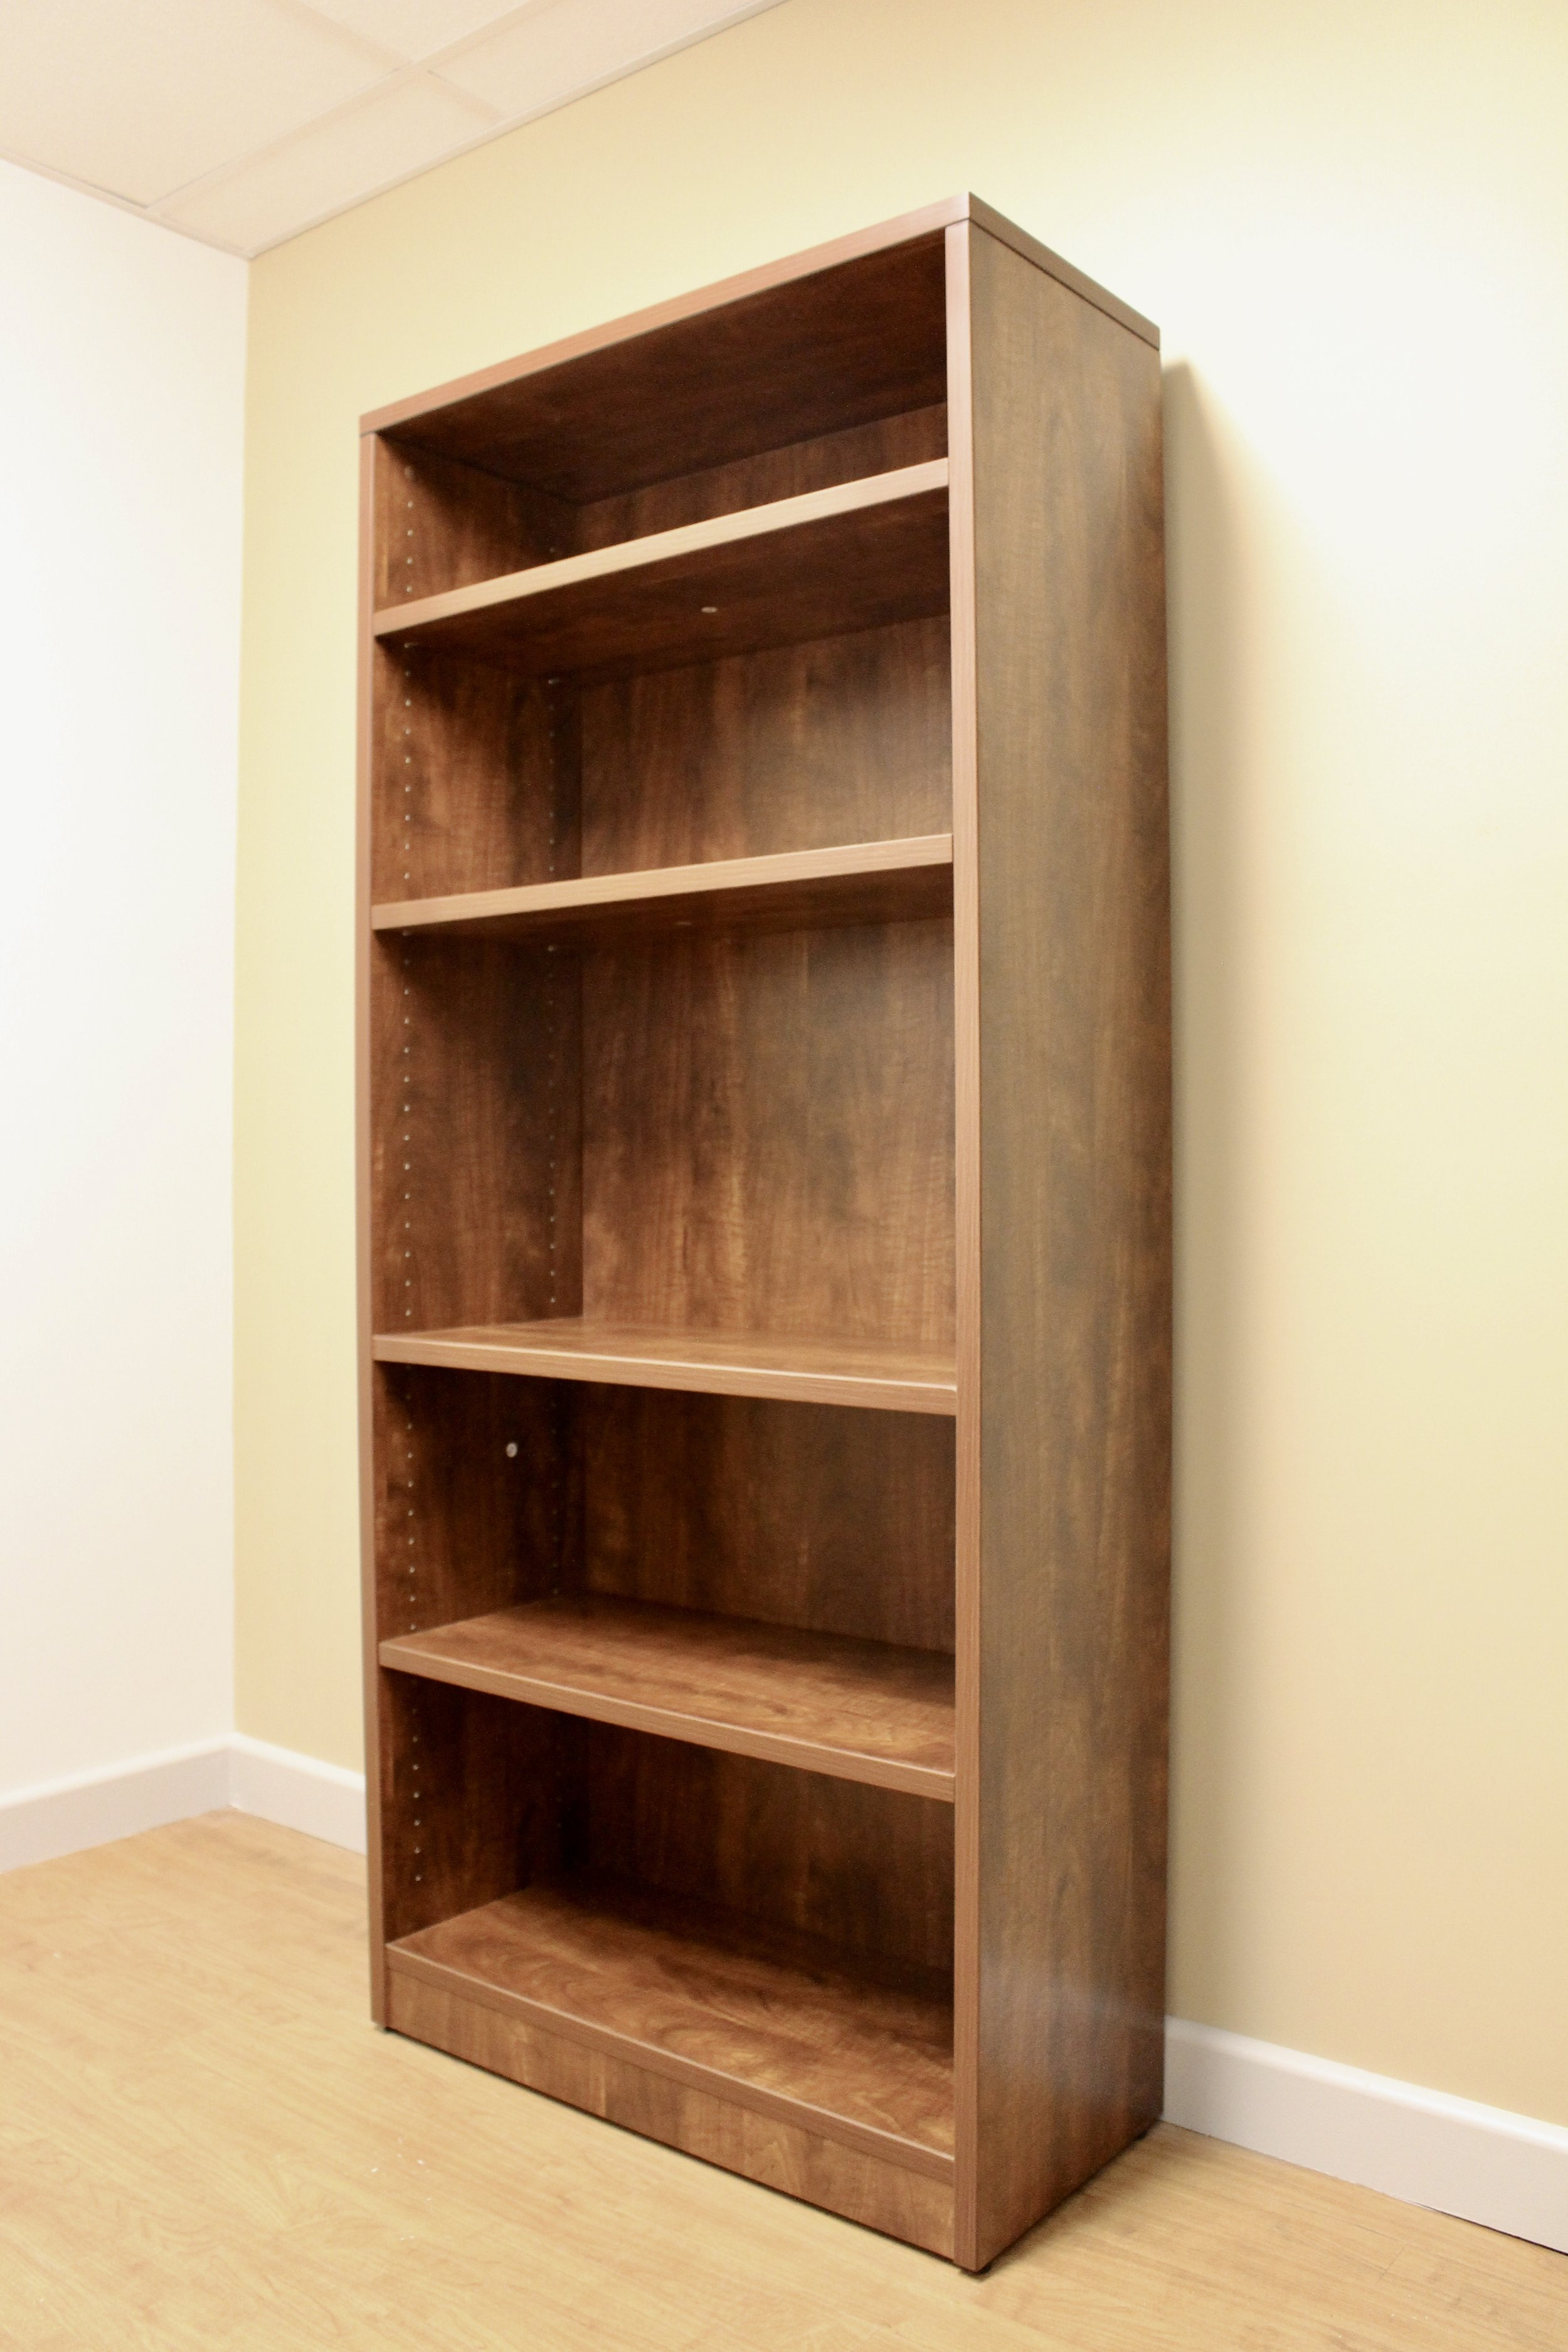 OTG Laminate Bookcase